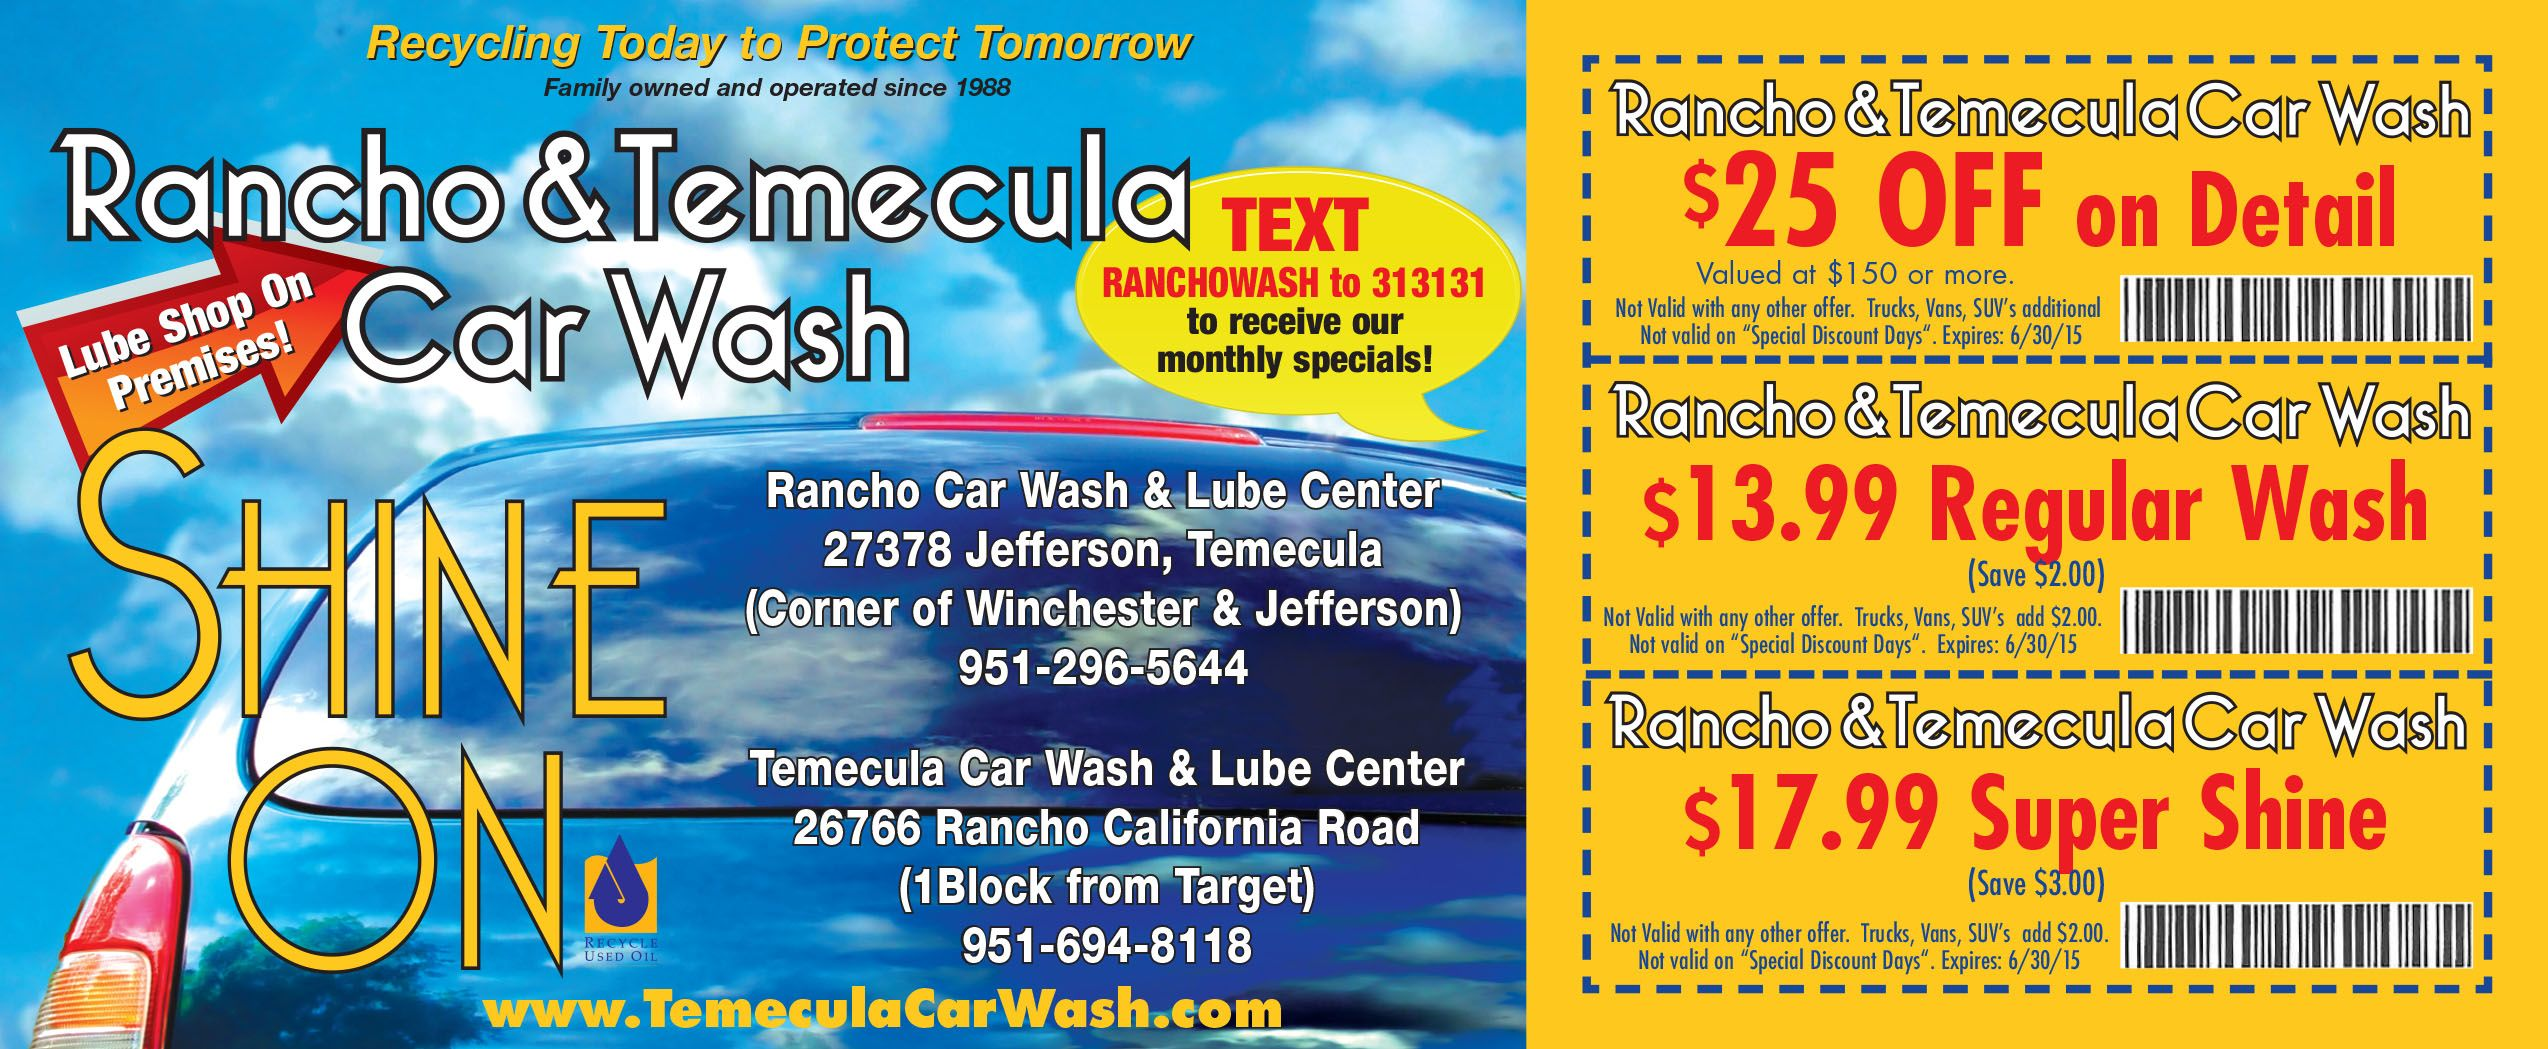 Car wash coupons diy pinterest car wash and car wash coupons rancho car wash is proud to be serving the temecula murrieta area with our quality full service car washing service car detailing and oil change service solutioingenieria Image collections